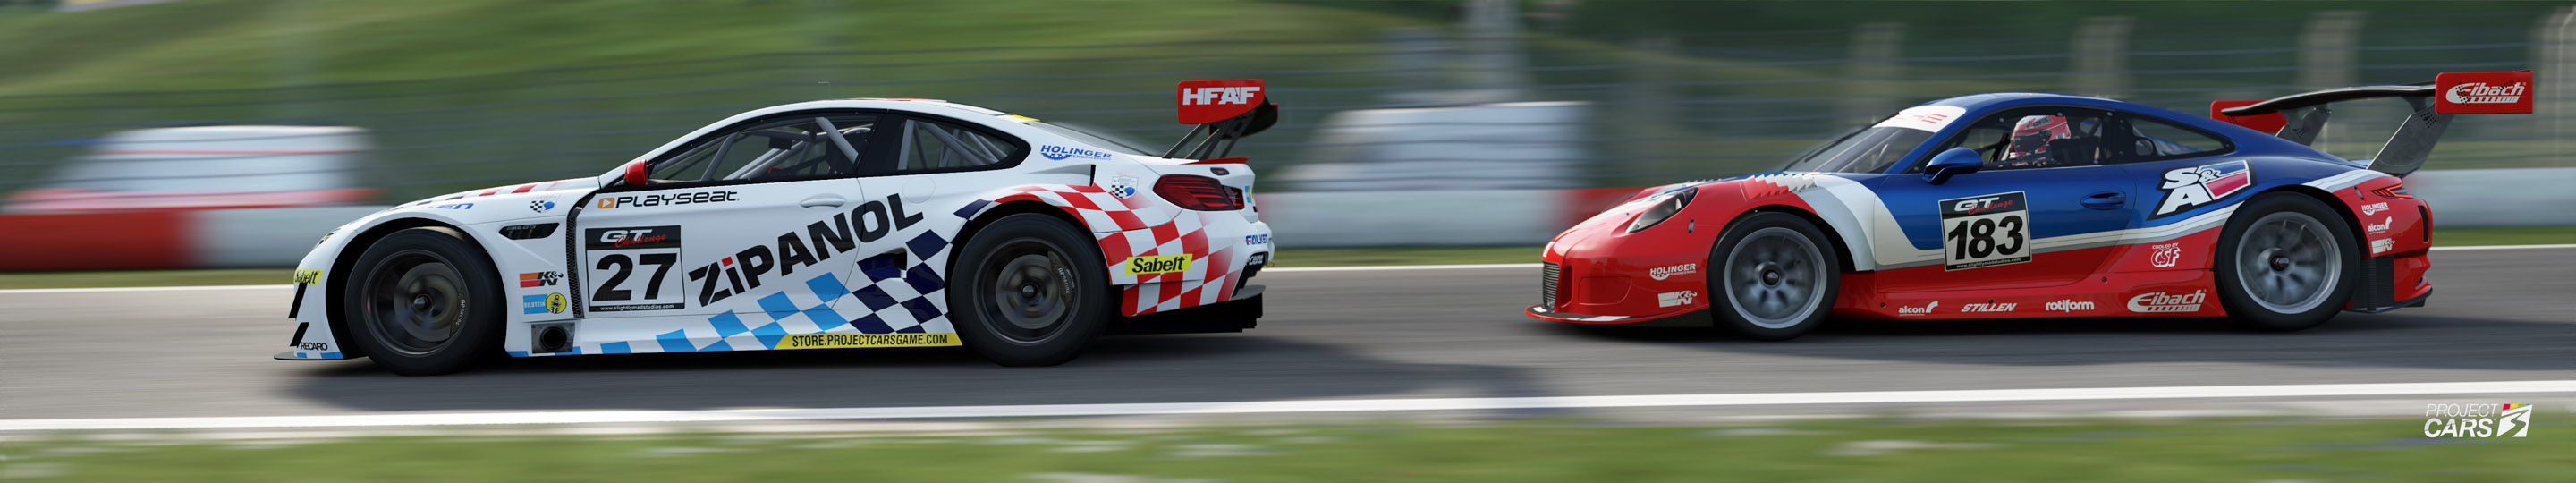 3 PROJECT CARS 3 PORSCHE 911 GT3 R at NURBURGRING copy.jpg